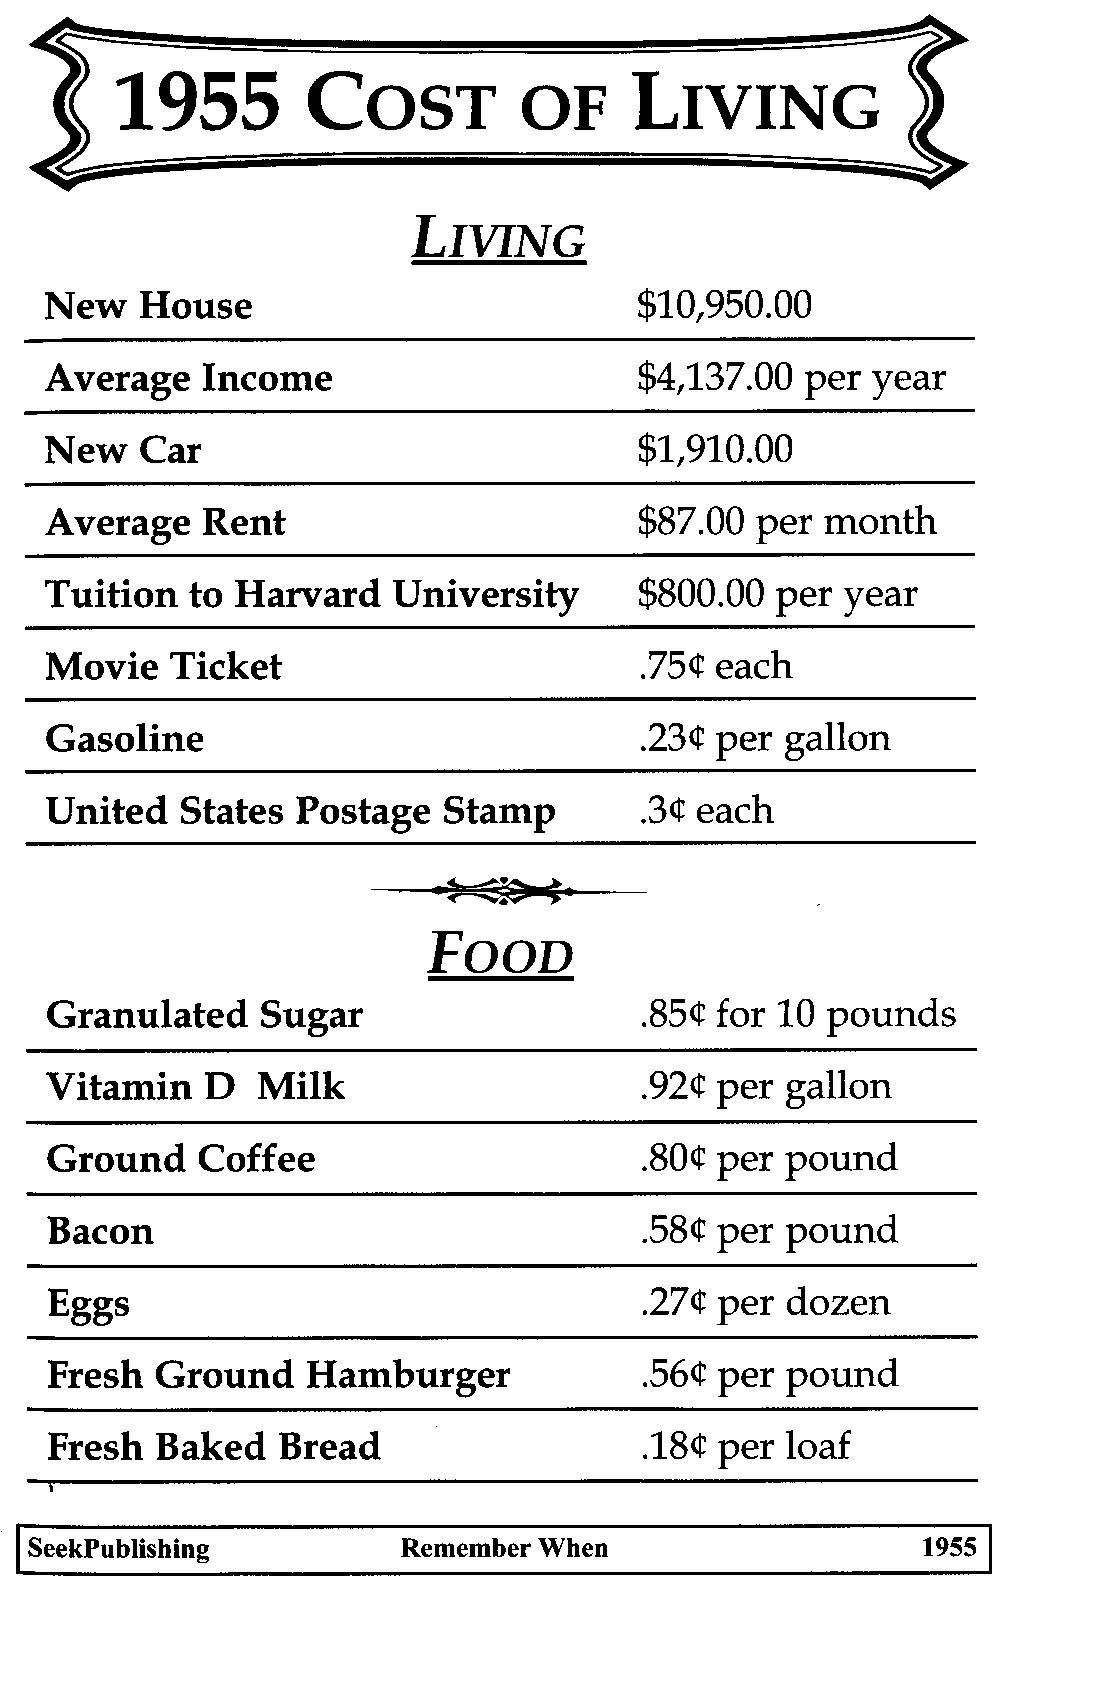 1955 Cost Of Living Cost Of Living History Nostalgia